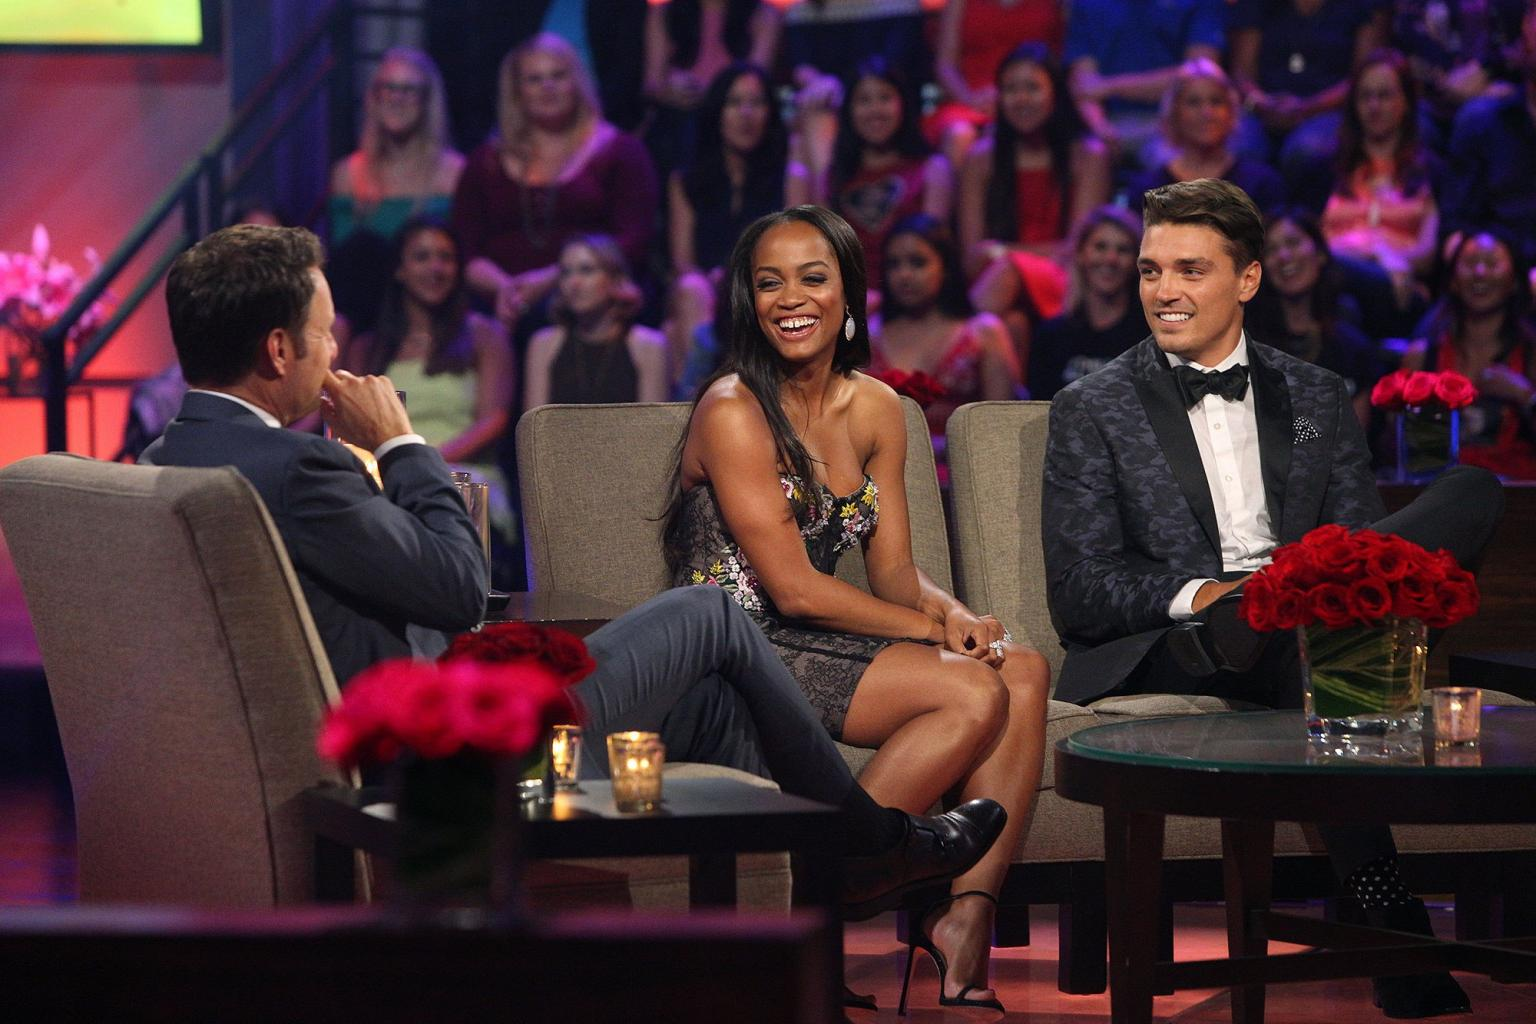 The Bachelorette's Rachel Lindsay: Why Men Tell All Had Me Terrified and Stress-Eating